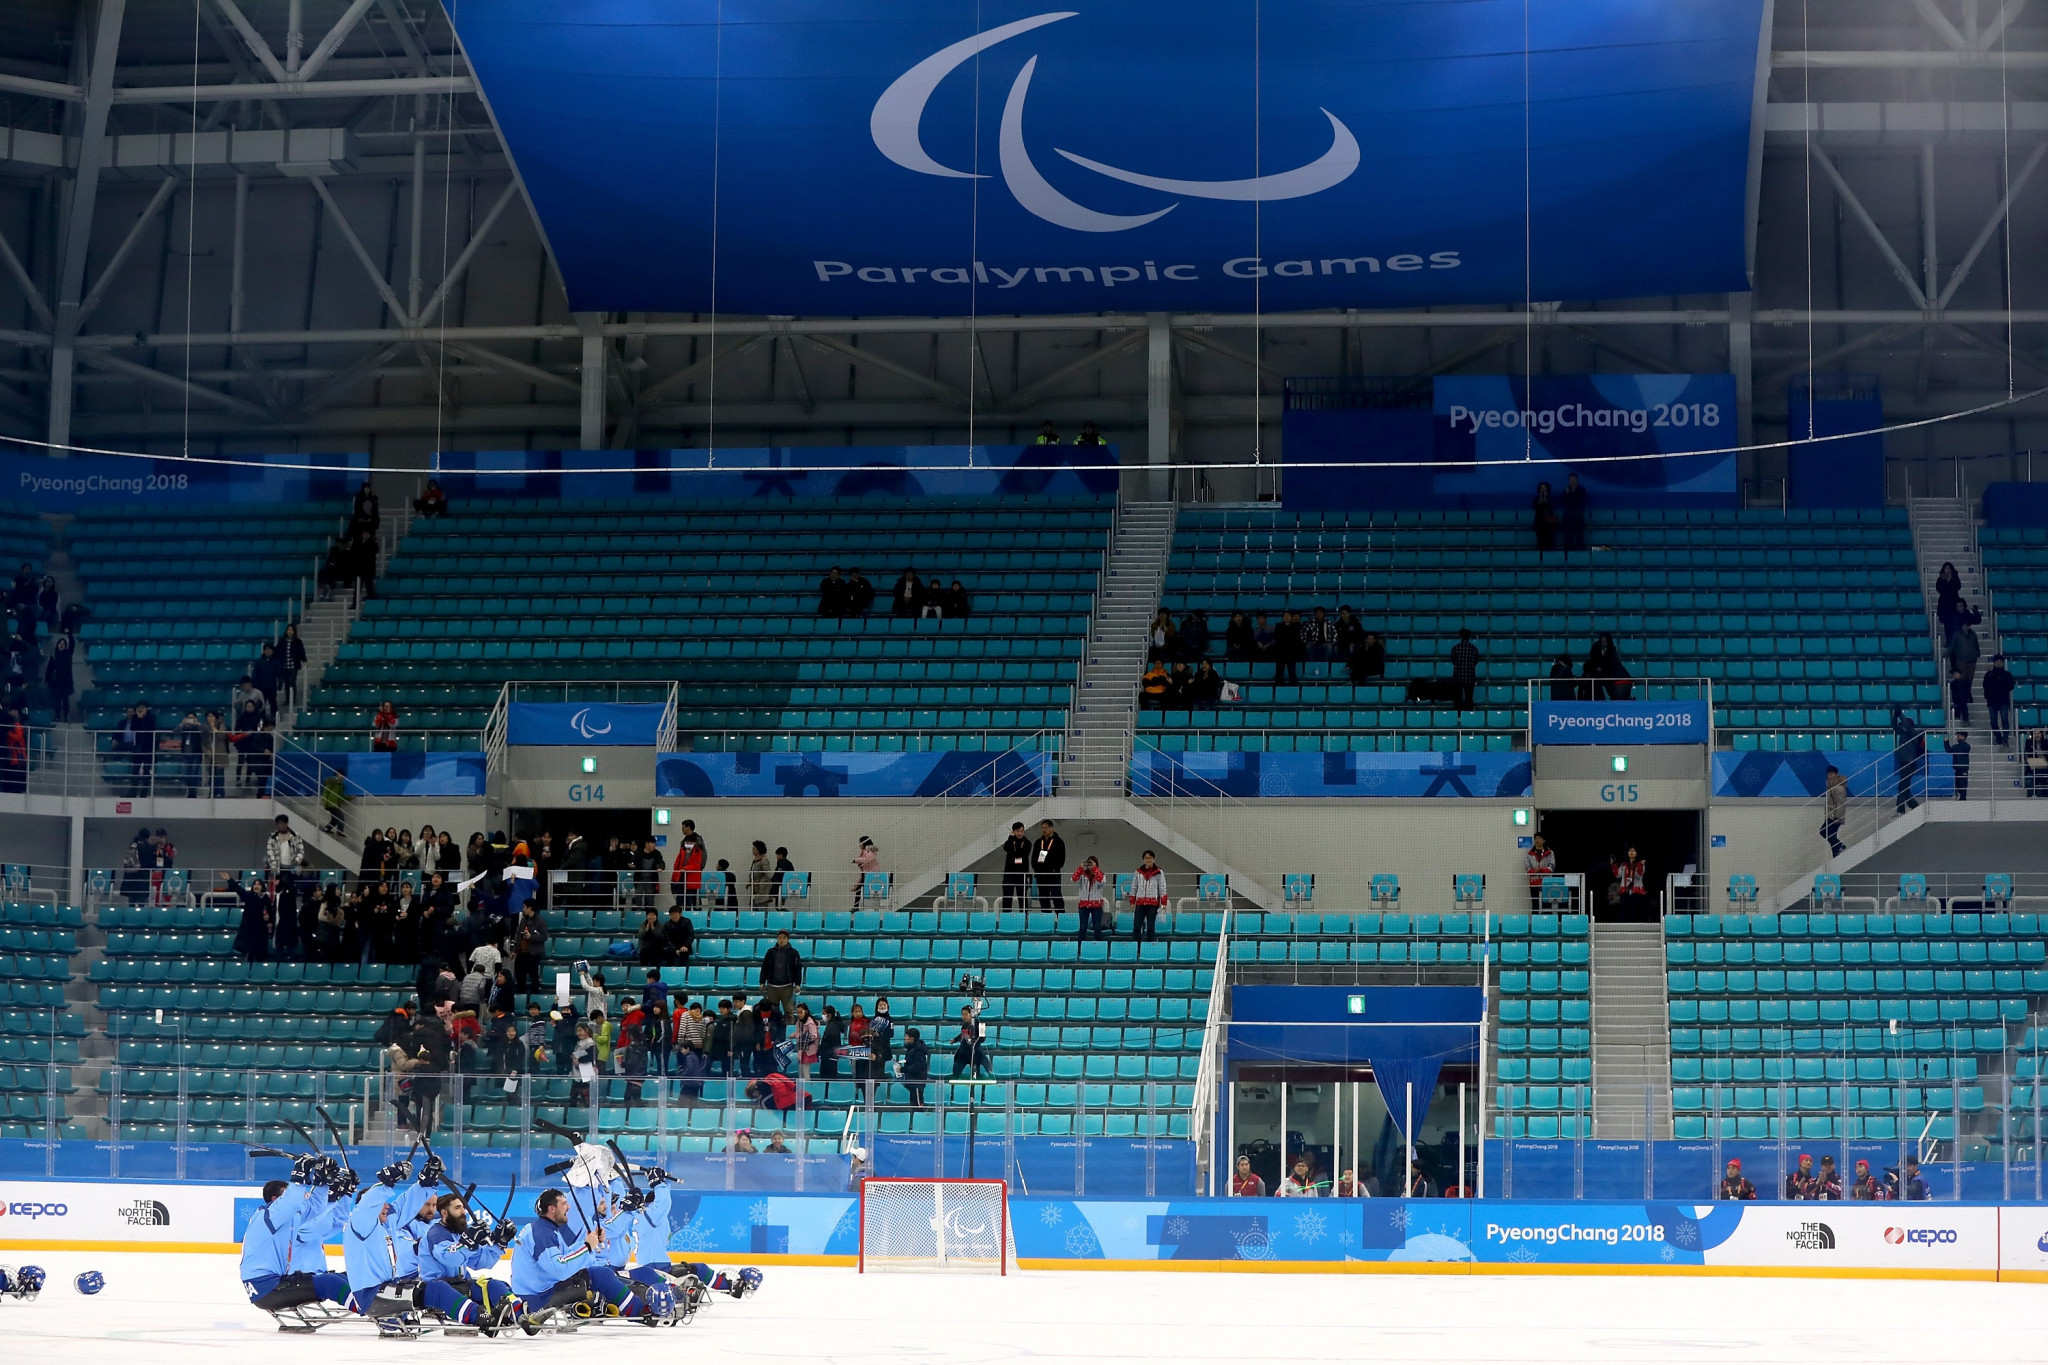 More than 25 per cent of ticket holders for Winter Paralympics failed to show up, Pyeongchang 2018 admit